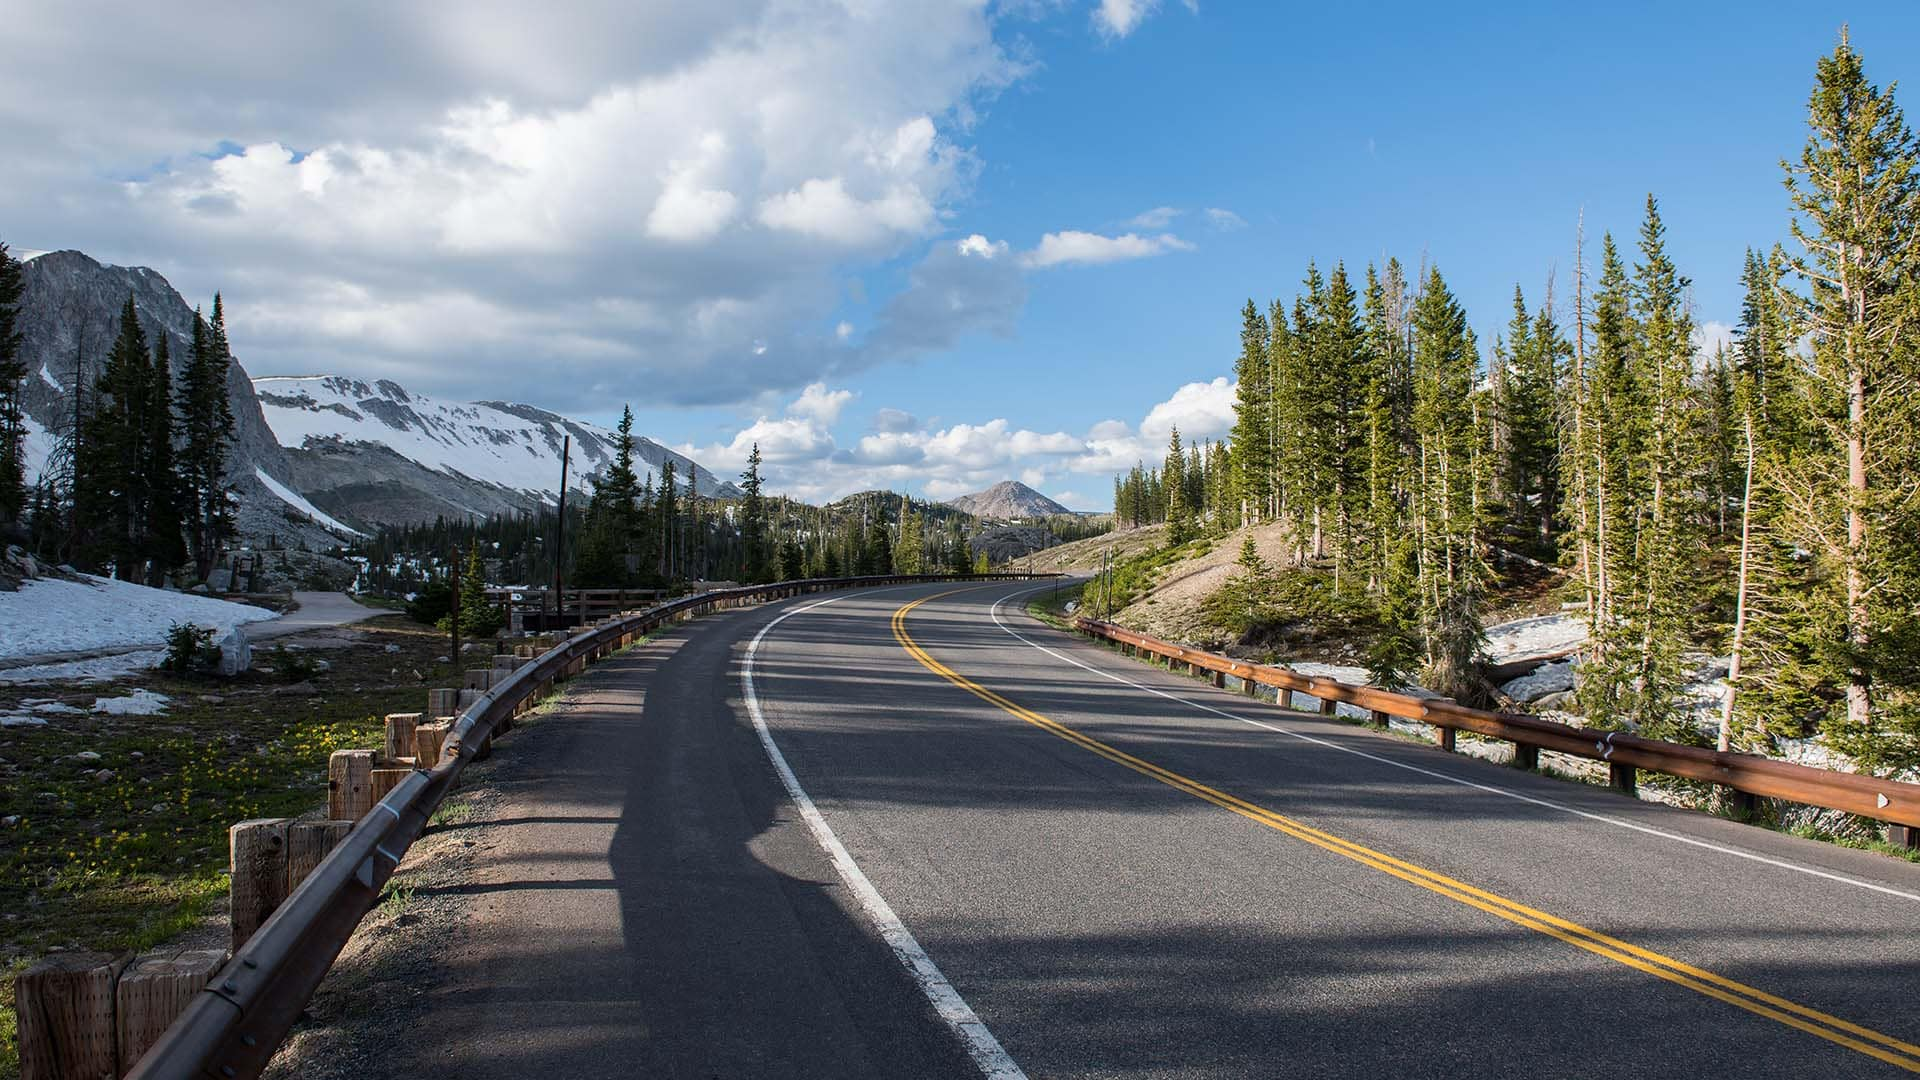 The 29-mile-long Snowy Range Scenic Byway takes drivers through dense forests and apline tundra.